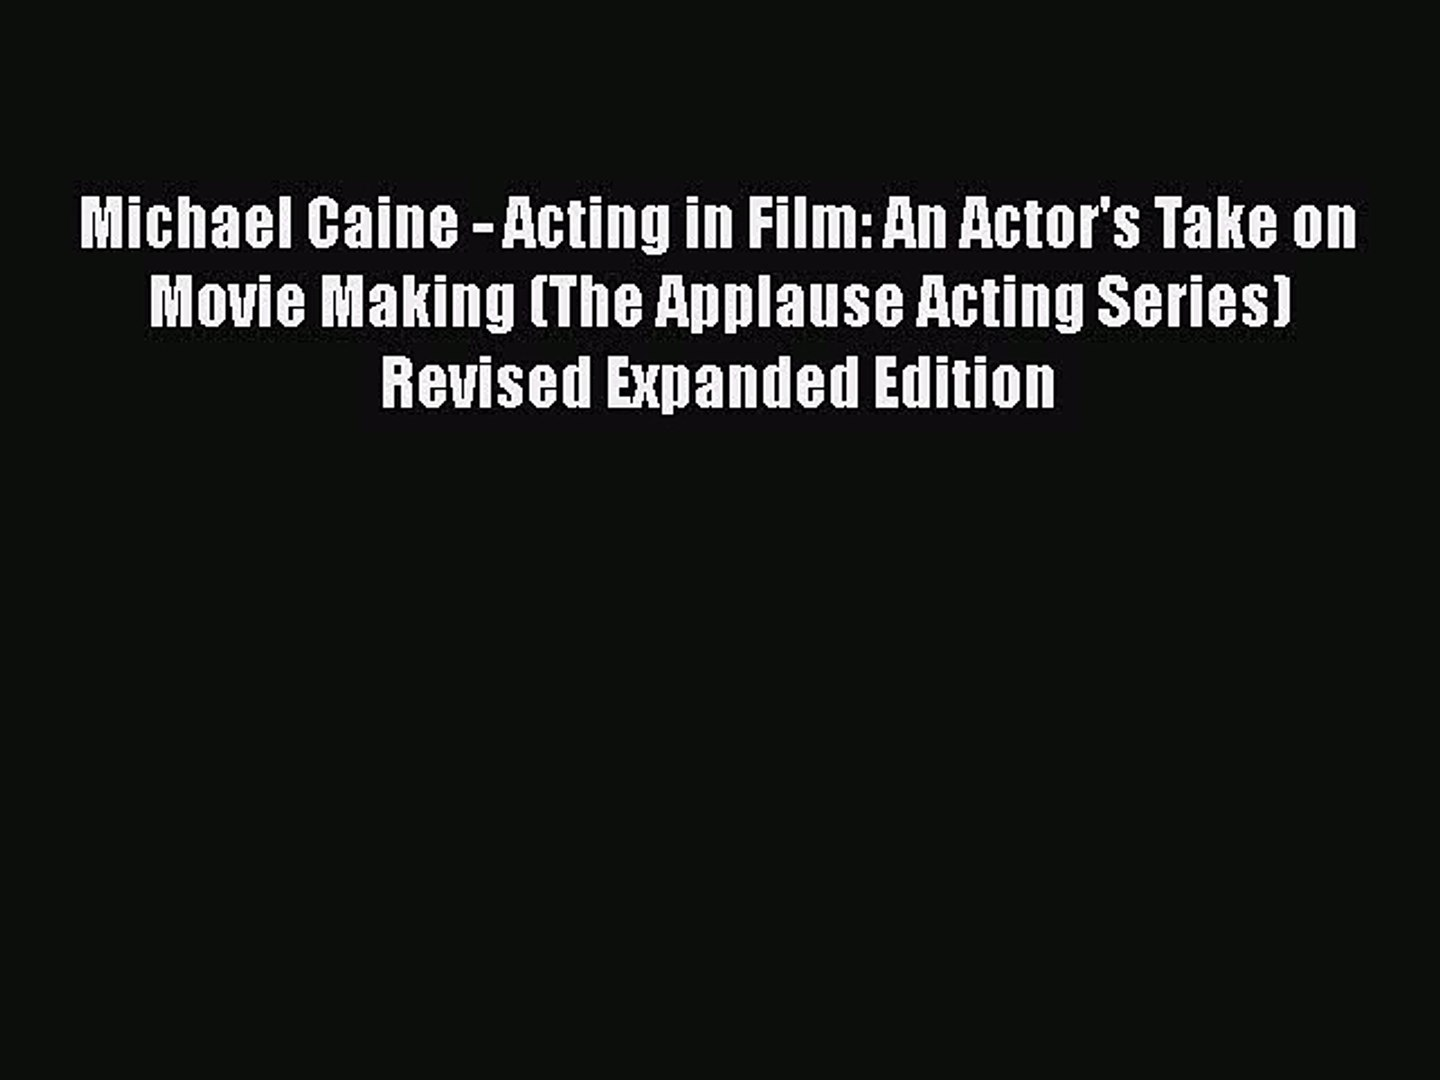 [Online PDF] Michael Caine - Acting in Film: An Actor's Take on Movie Making (The Applause